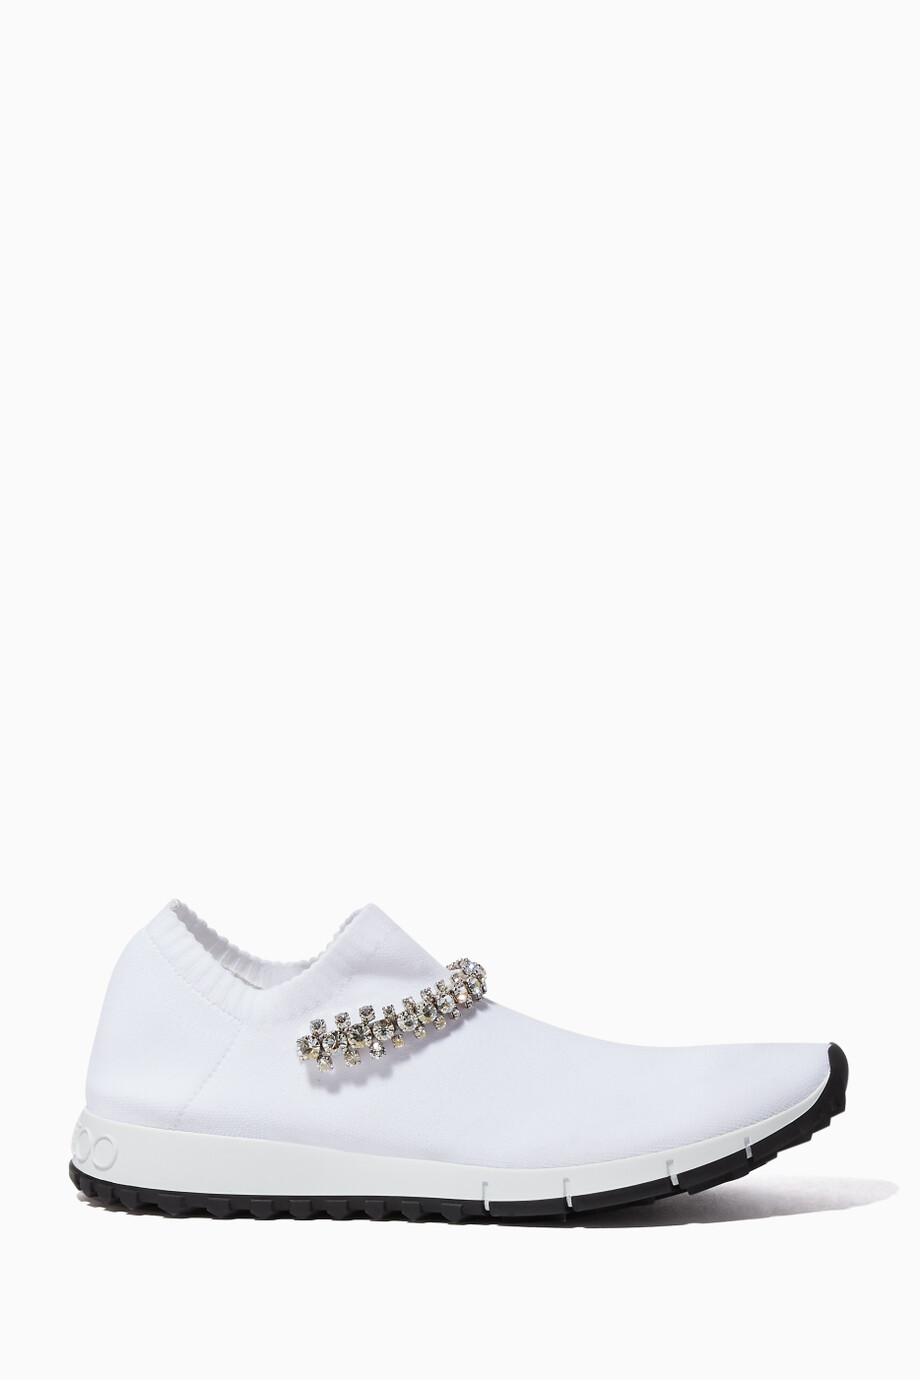 0635f2aaf741 Shop Jimmy Choo White White Verona Knit Sneakers for Women